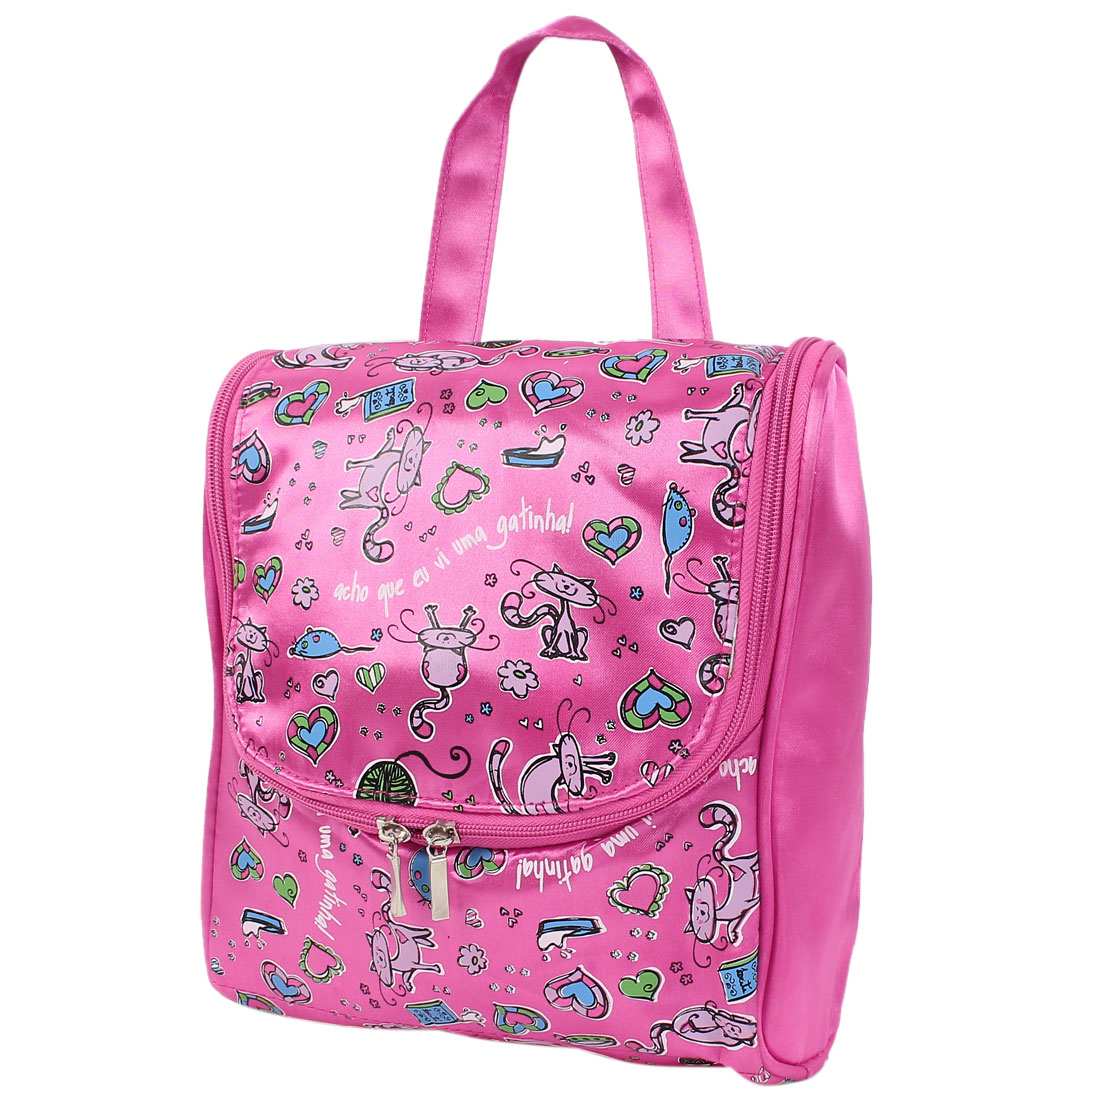 Lady Polyester Cartoon Cat Print Travel Toiletry Cosmetic Storage Handbag Pink